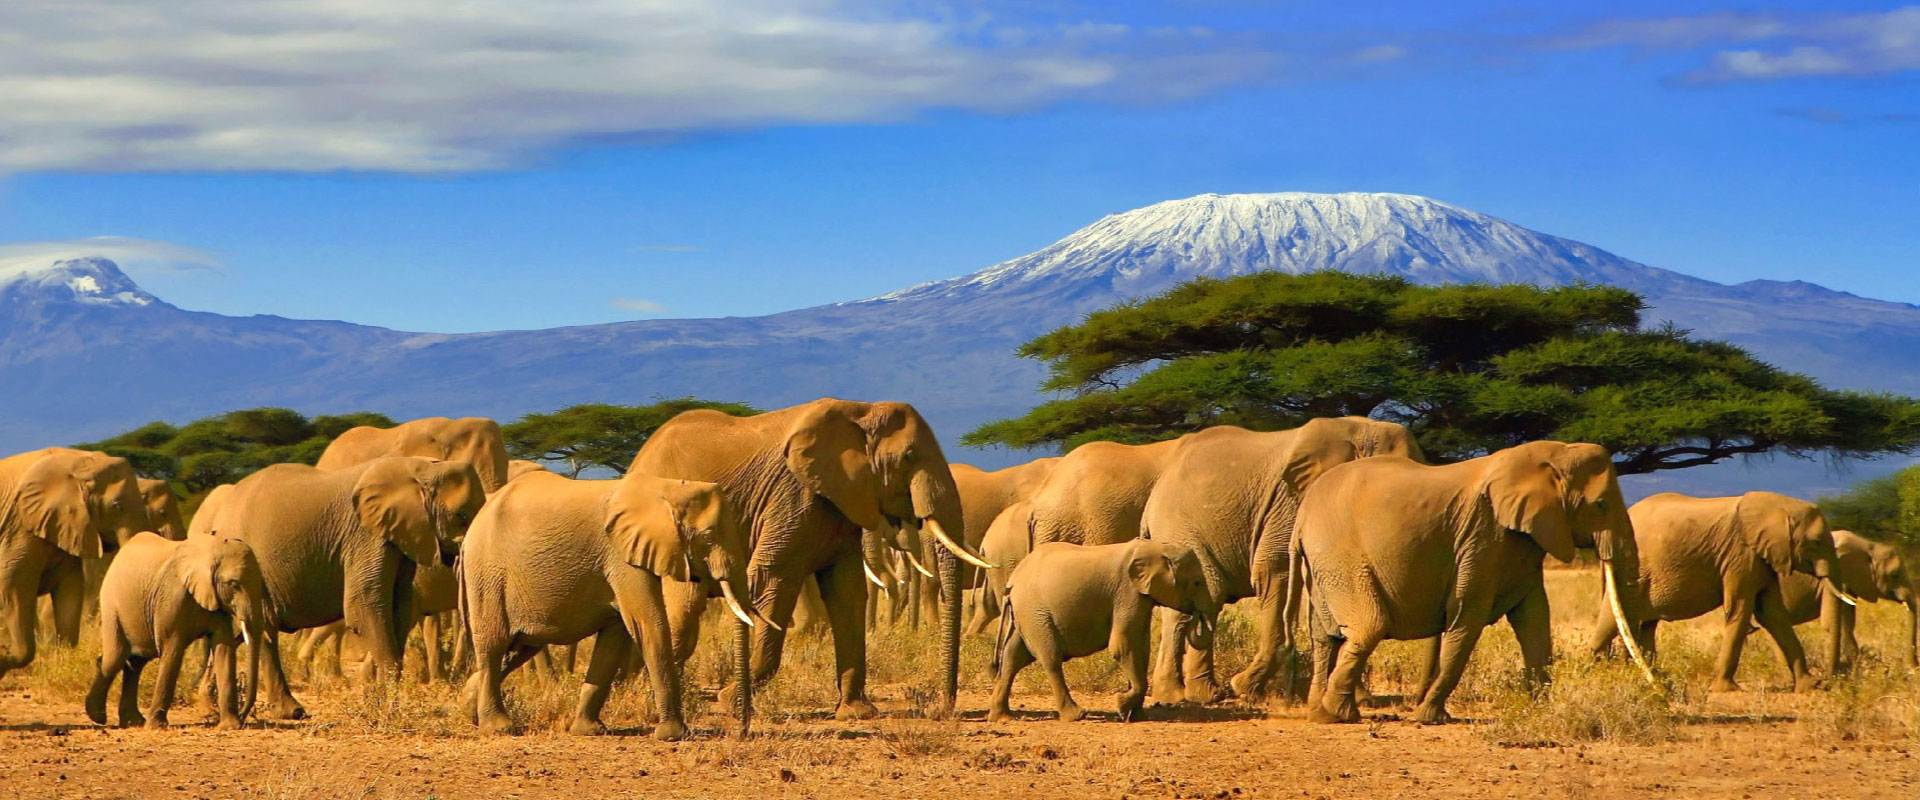 View of Mt. Kilimanjaro with herd of elephants in Tanzania